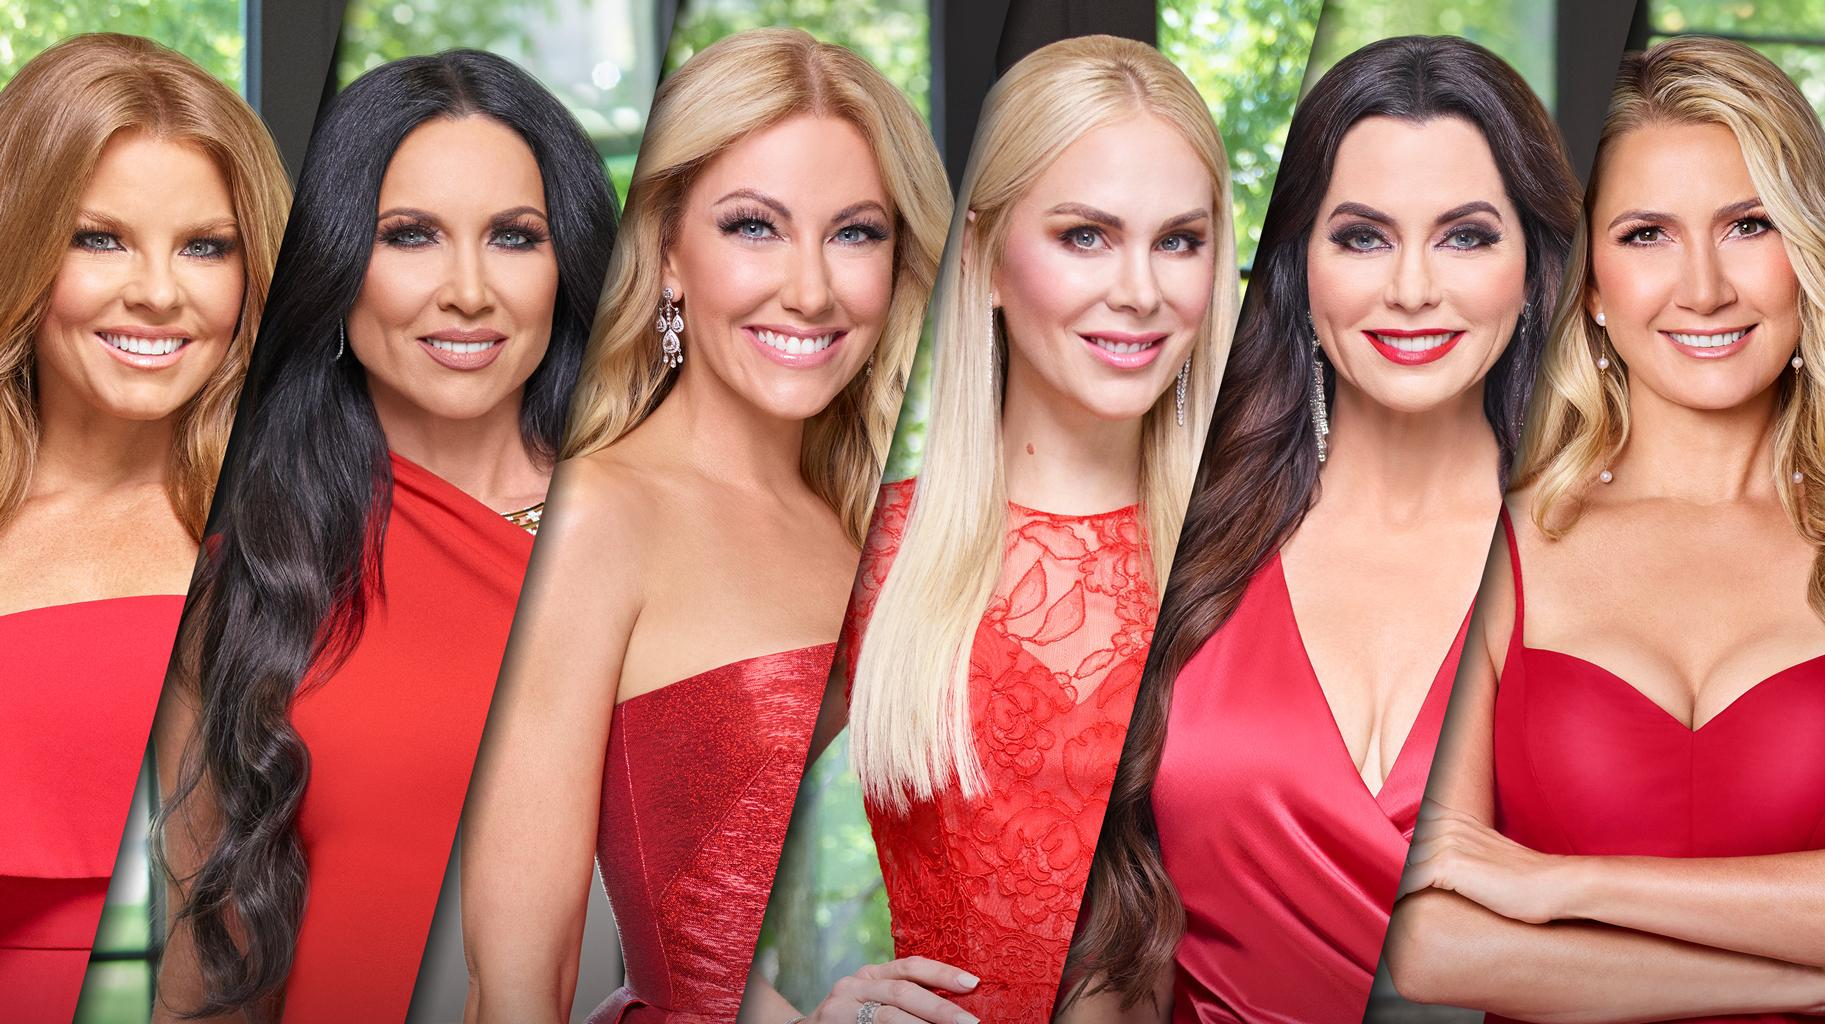 The Real Housewives Of Dallas Cast Did Not Think Leanne Locken's Racist Rants Would Air